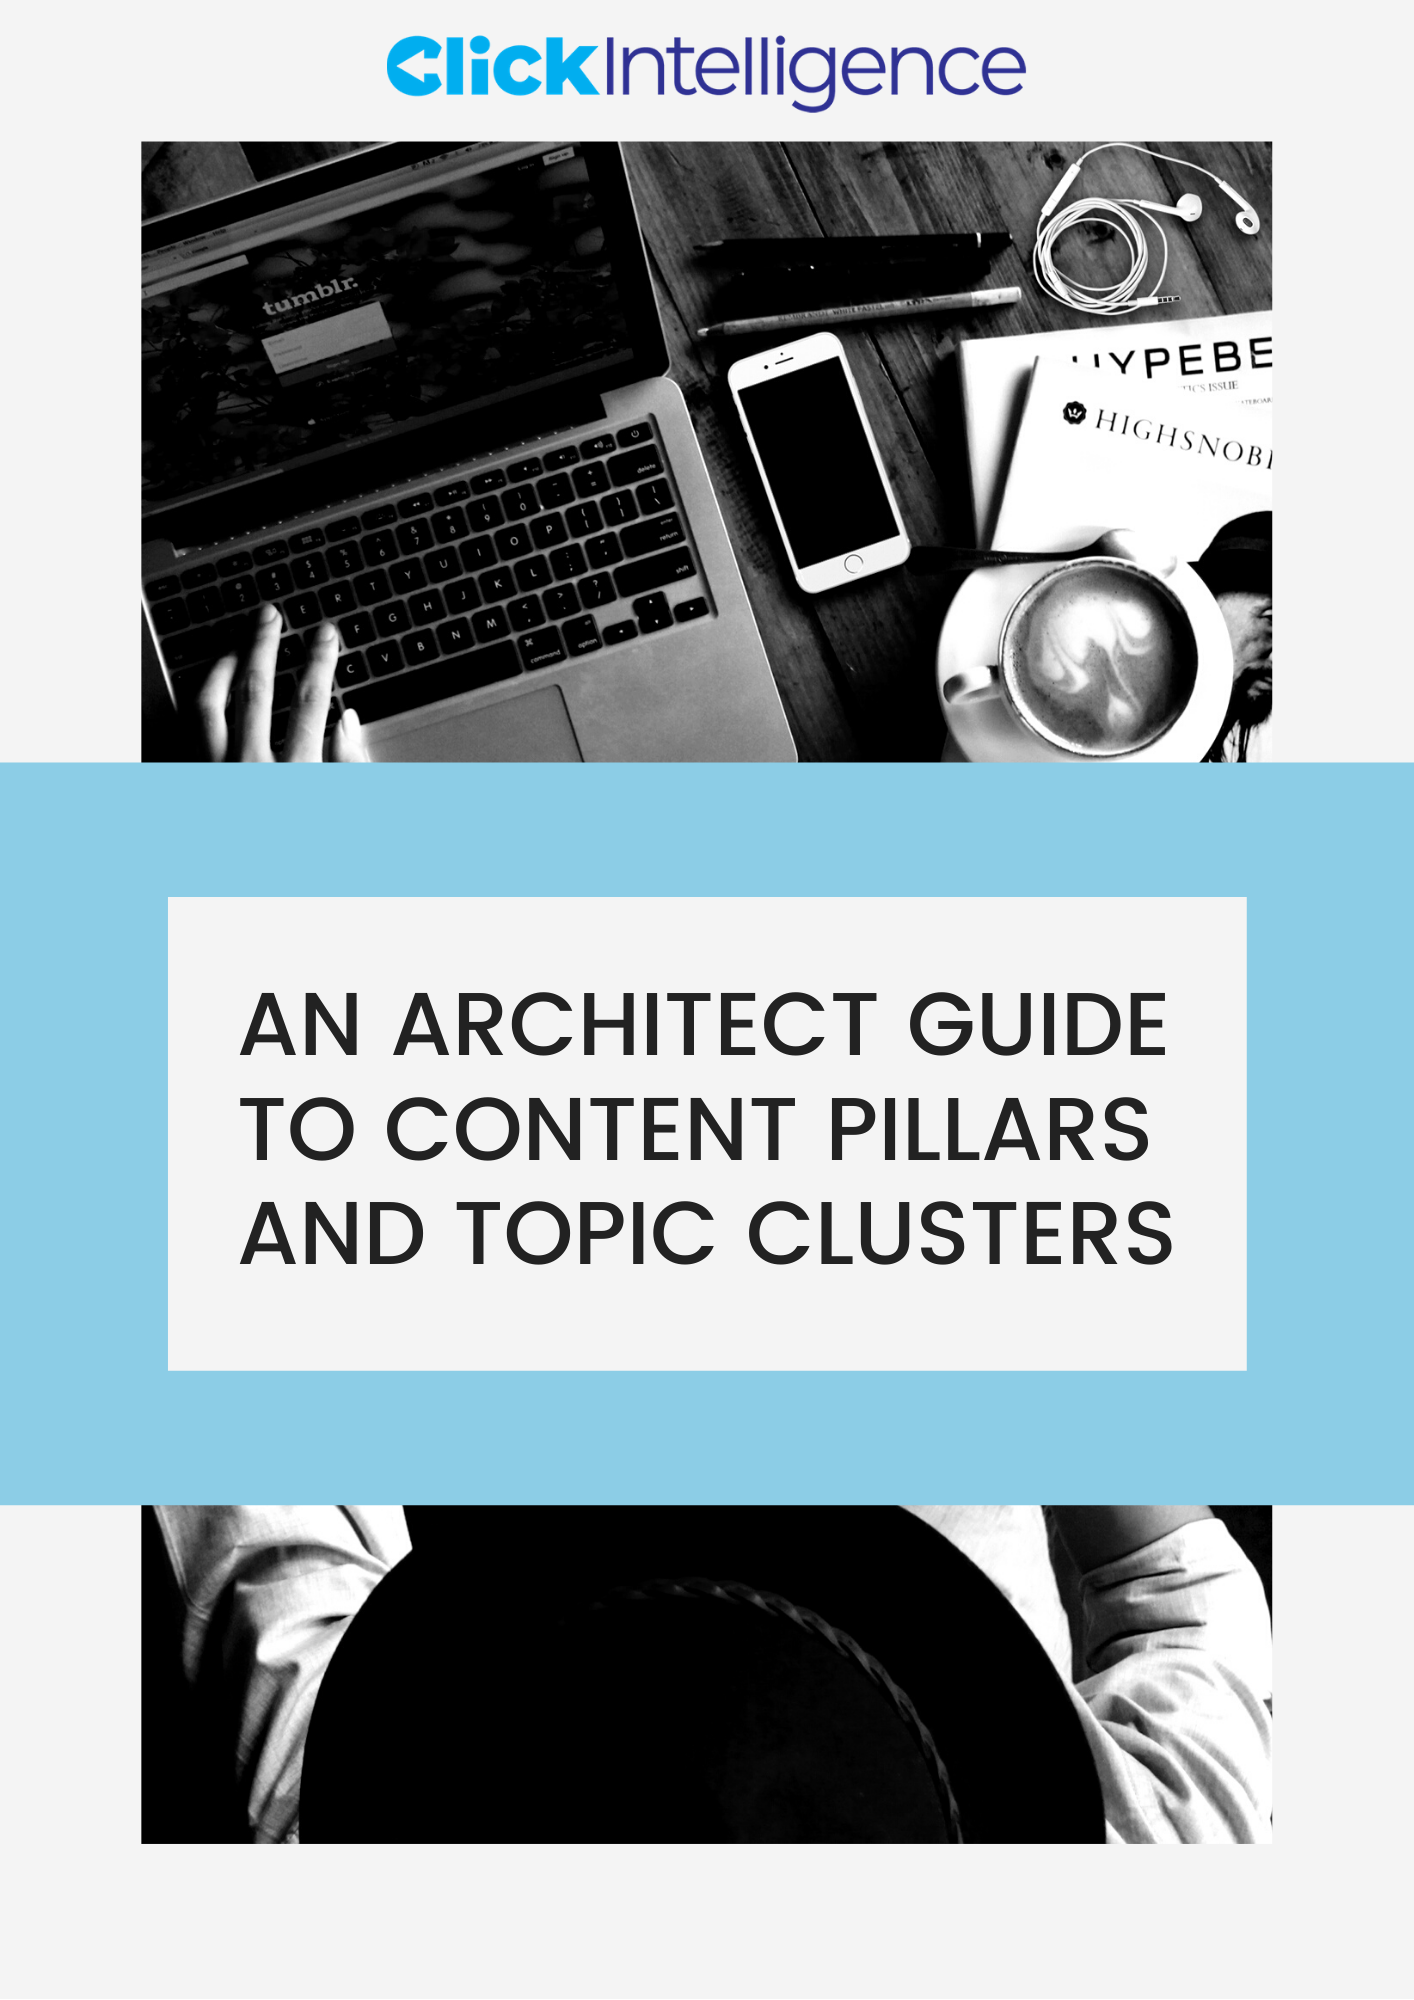 An Architect Guide to Content Pillars and Topic Clusters